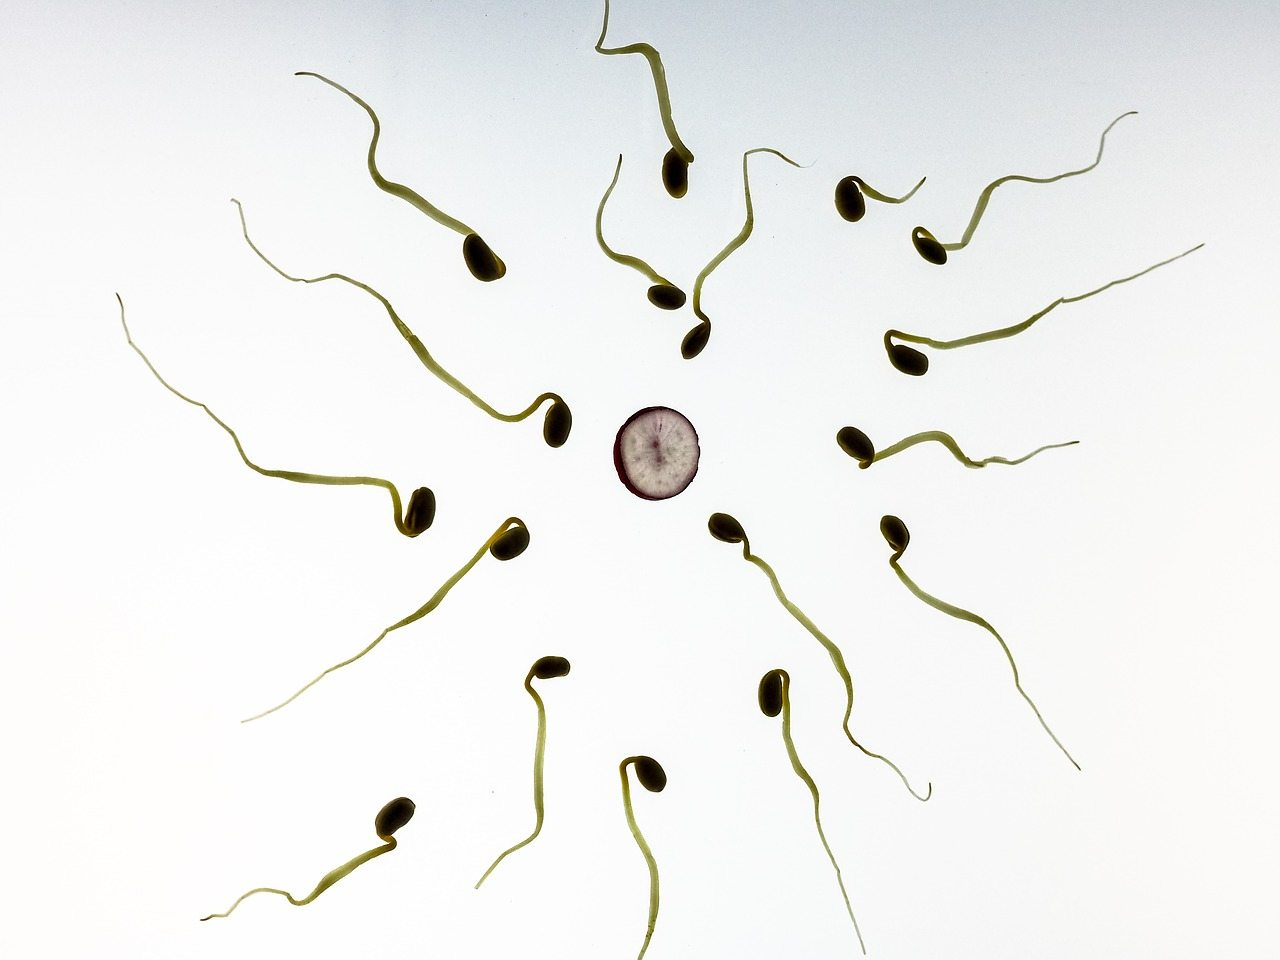 Timing intercourse with low sperm count